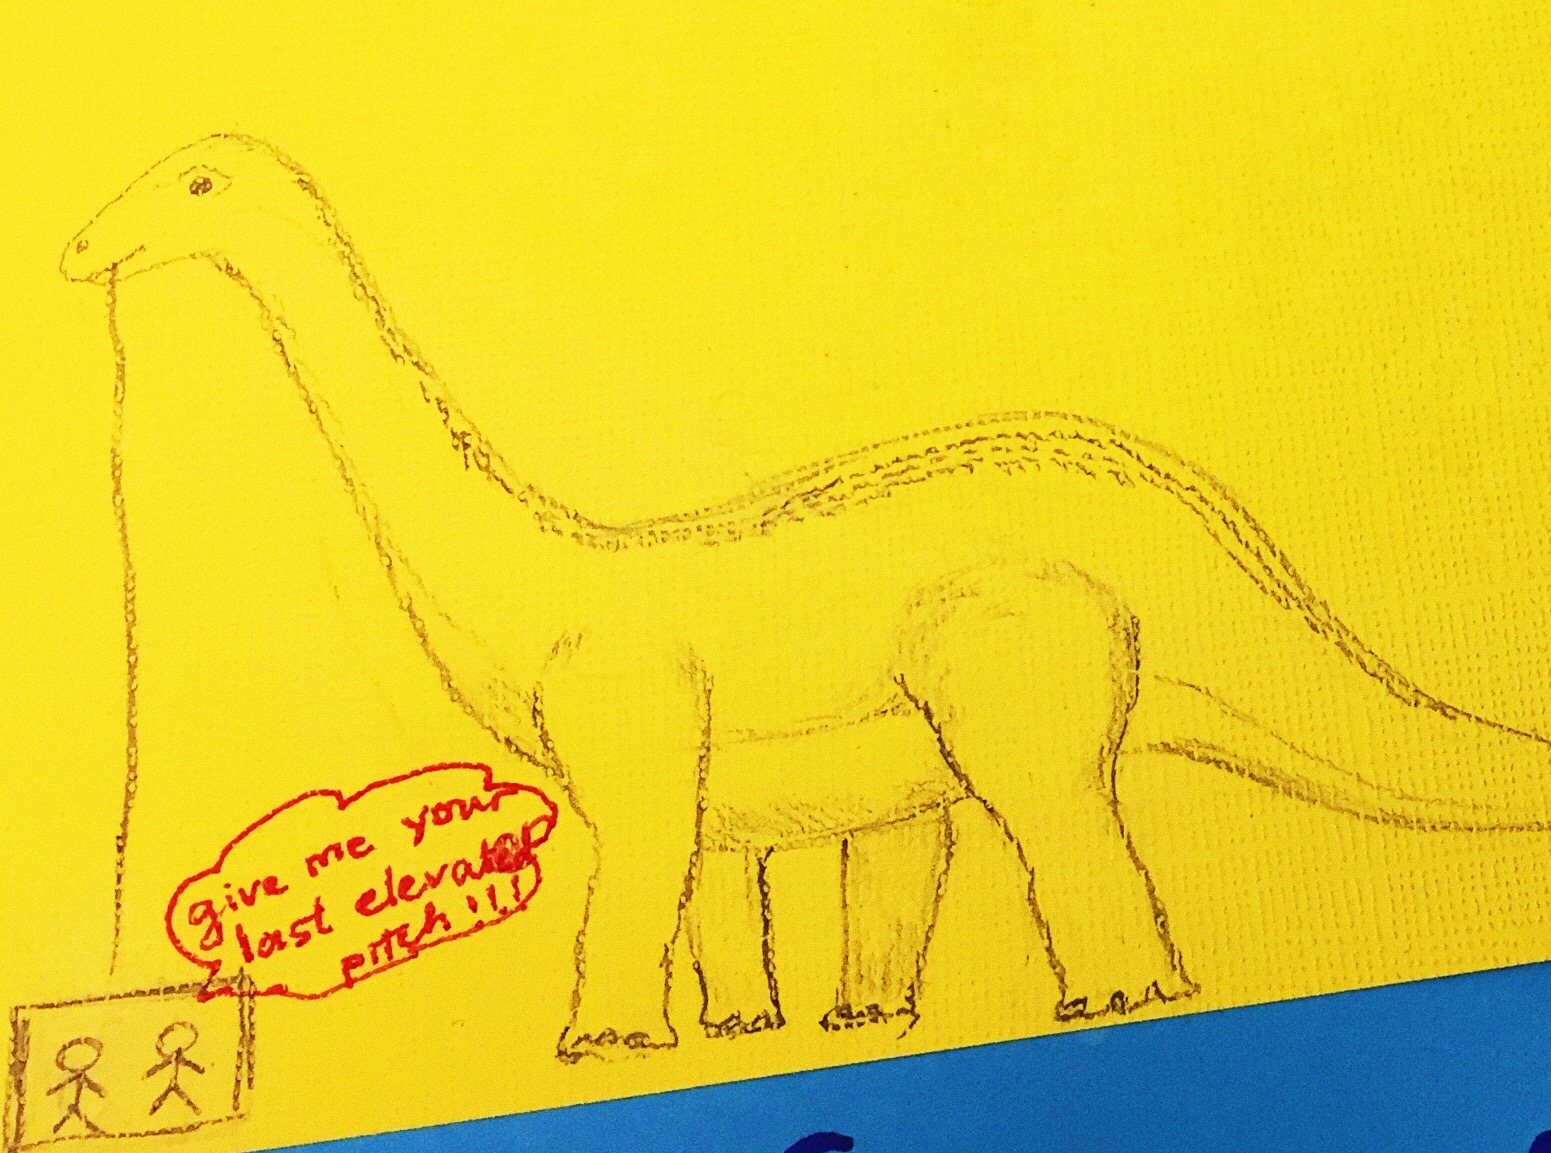 A friendly message from a #scicomm dinosaur a student recently drew for me!